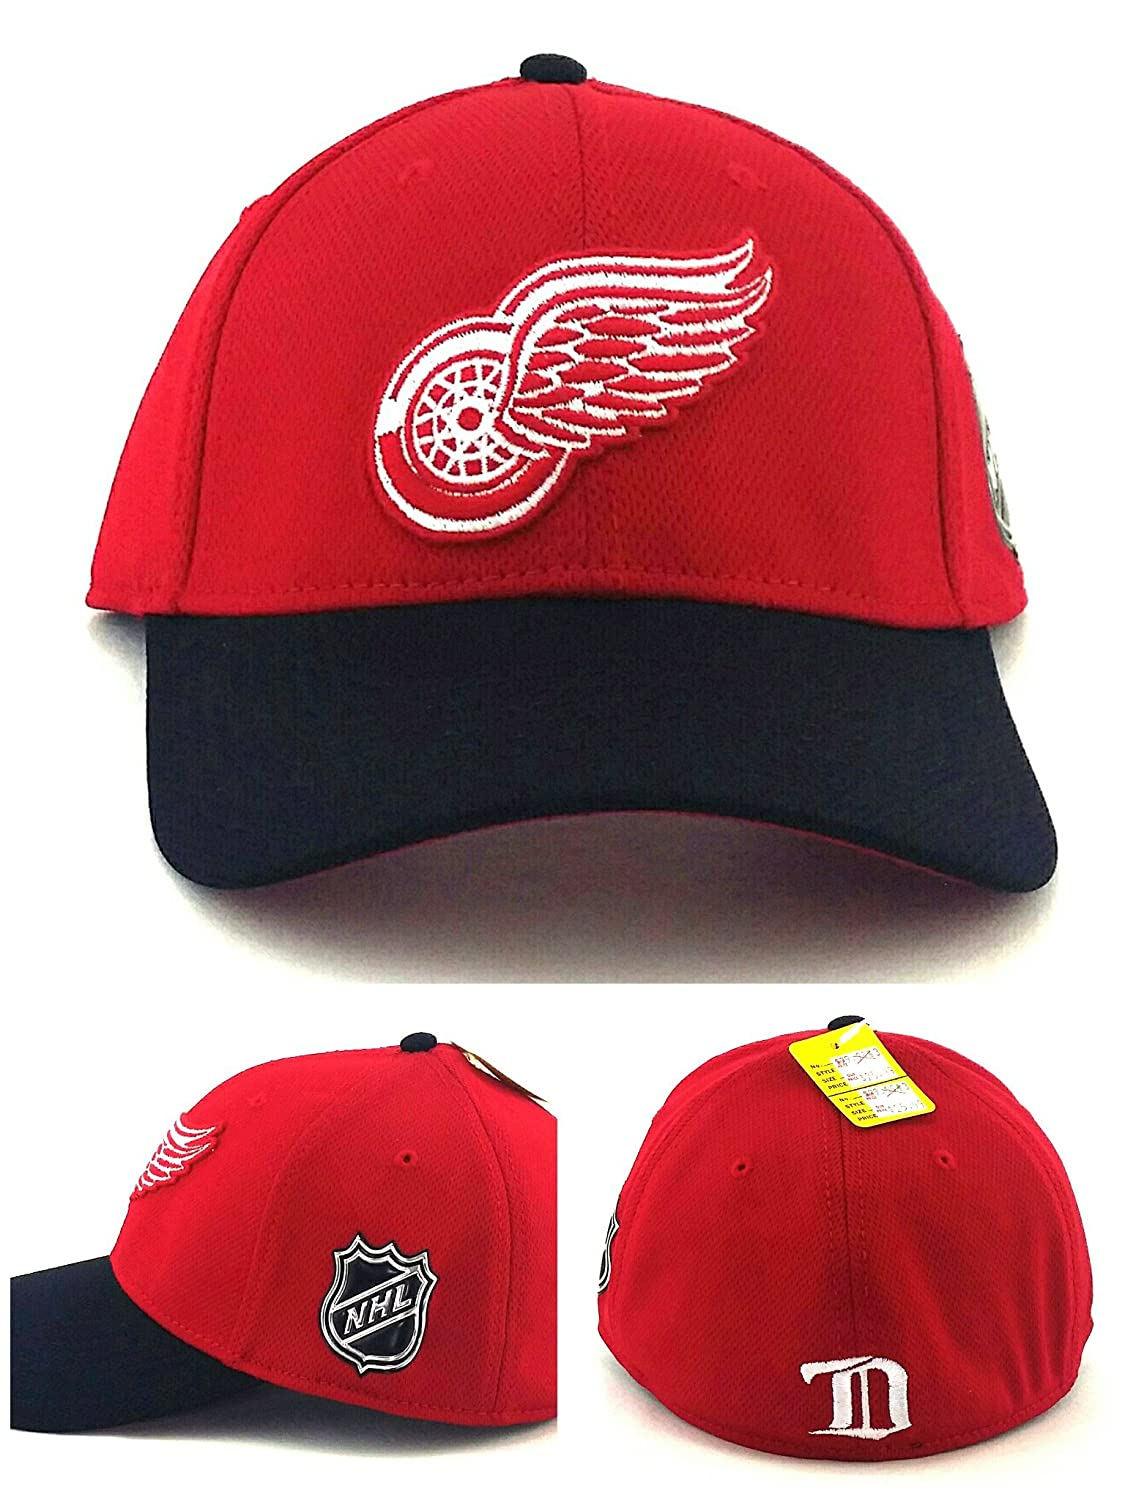 34f32ad6d5b34 Amazon.com   American Needle Detroit Red Wings New Red Black Dri Tech  Stretch Era Flex Fitted Hat Cap Large L   Sports   Outdoors